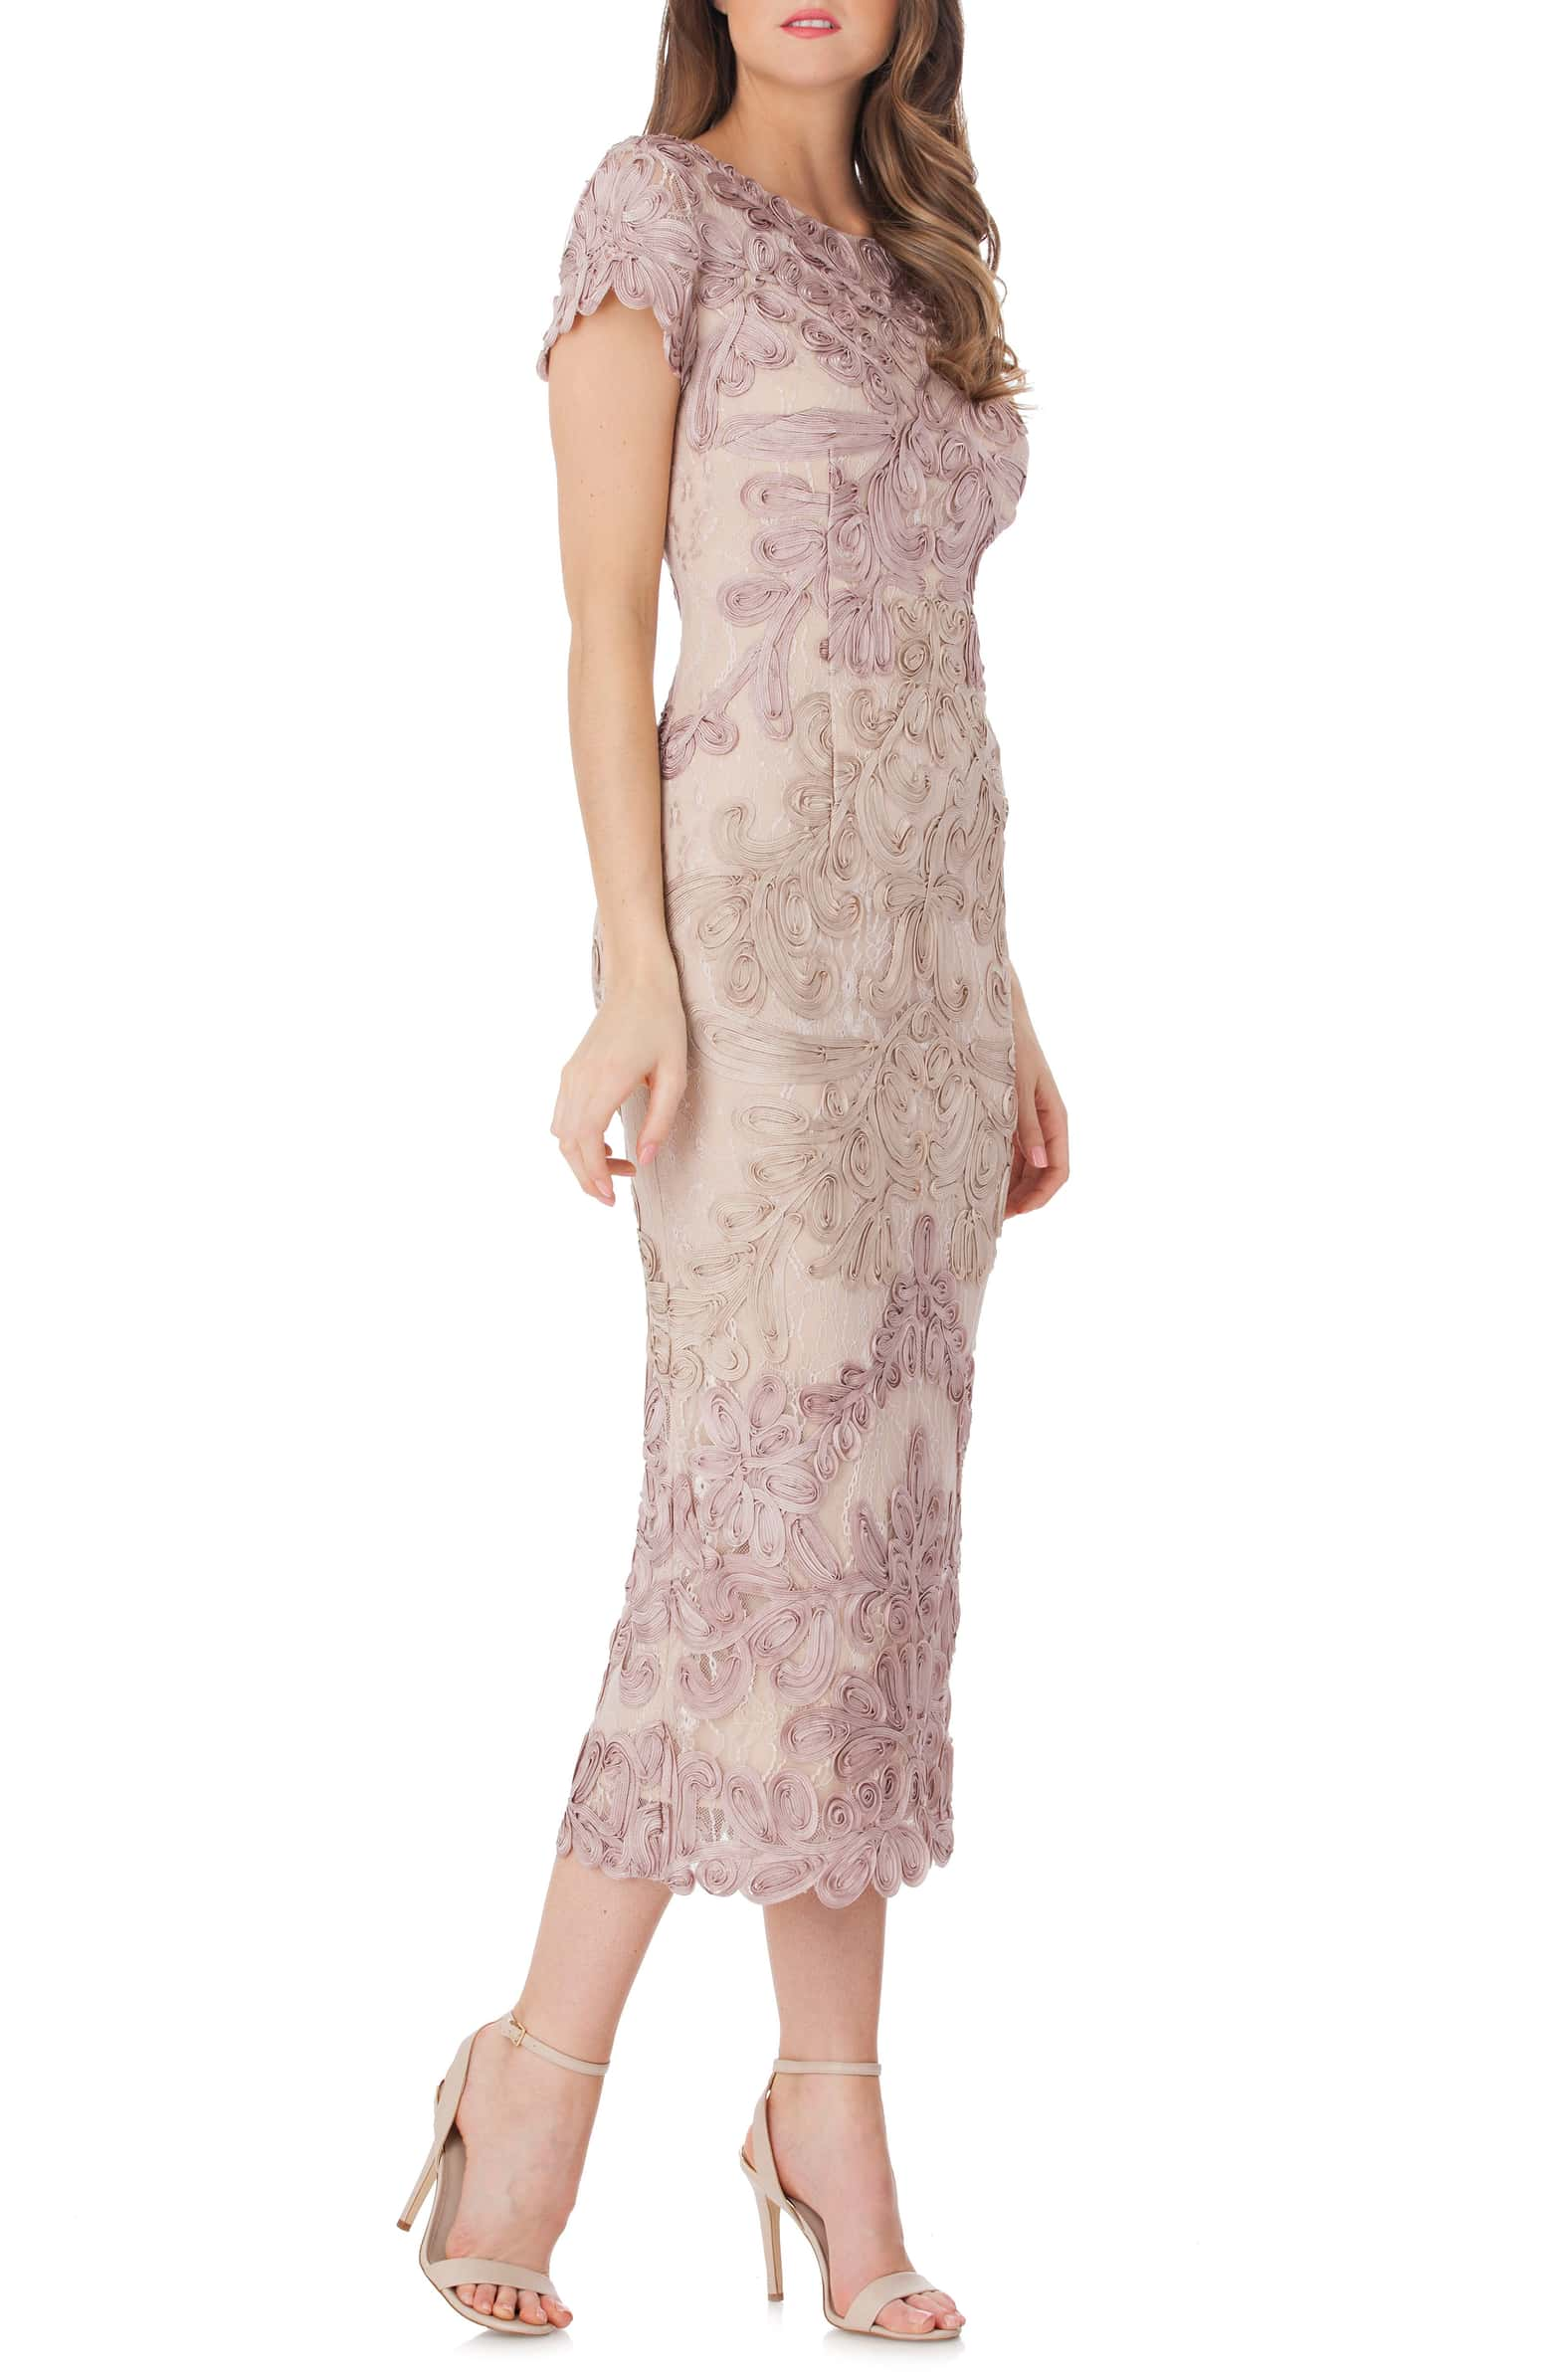 JS Collections Soutache Lace Midi Dress in Pink/Sand